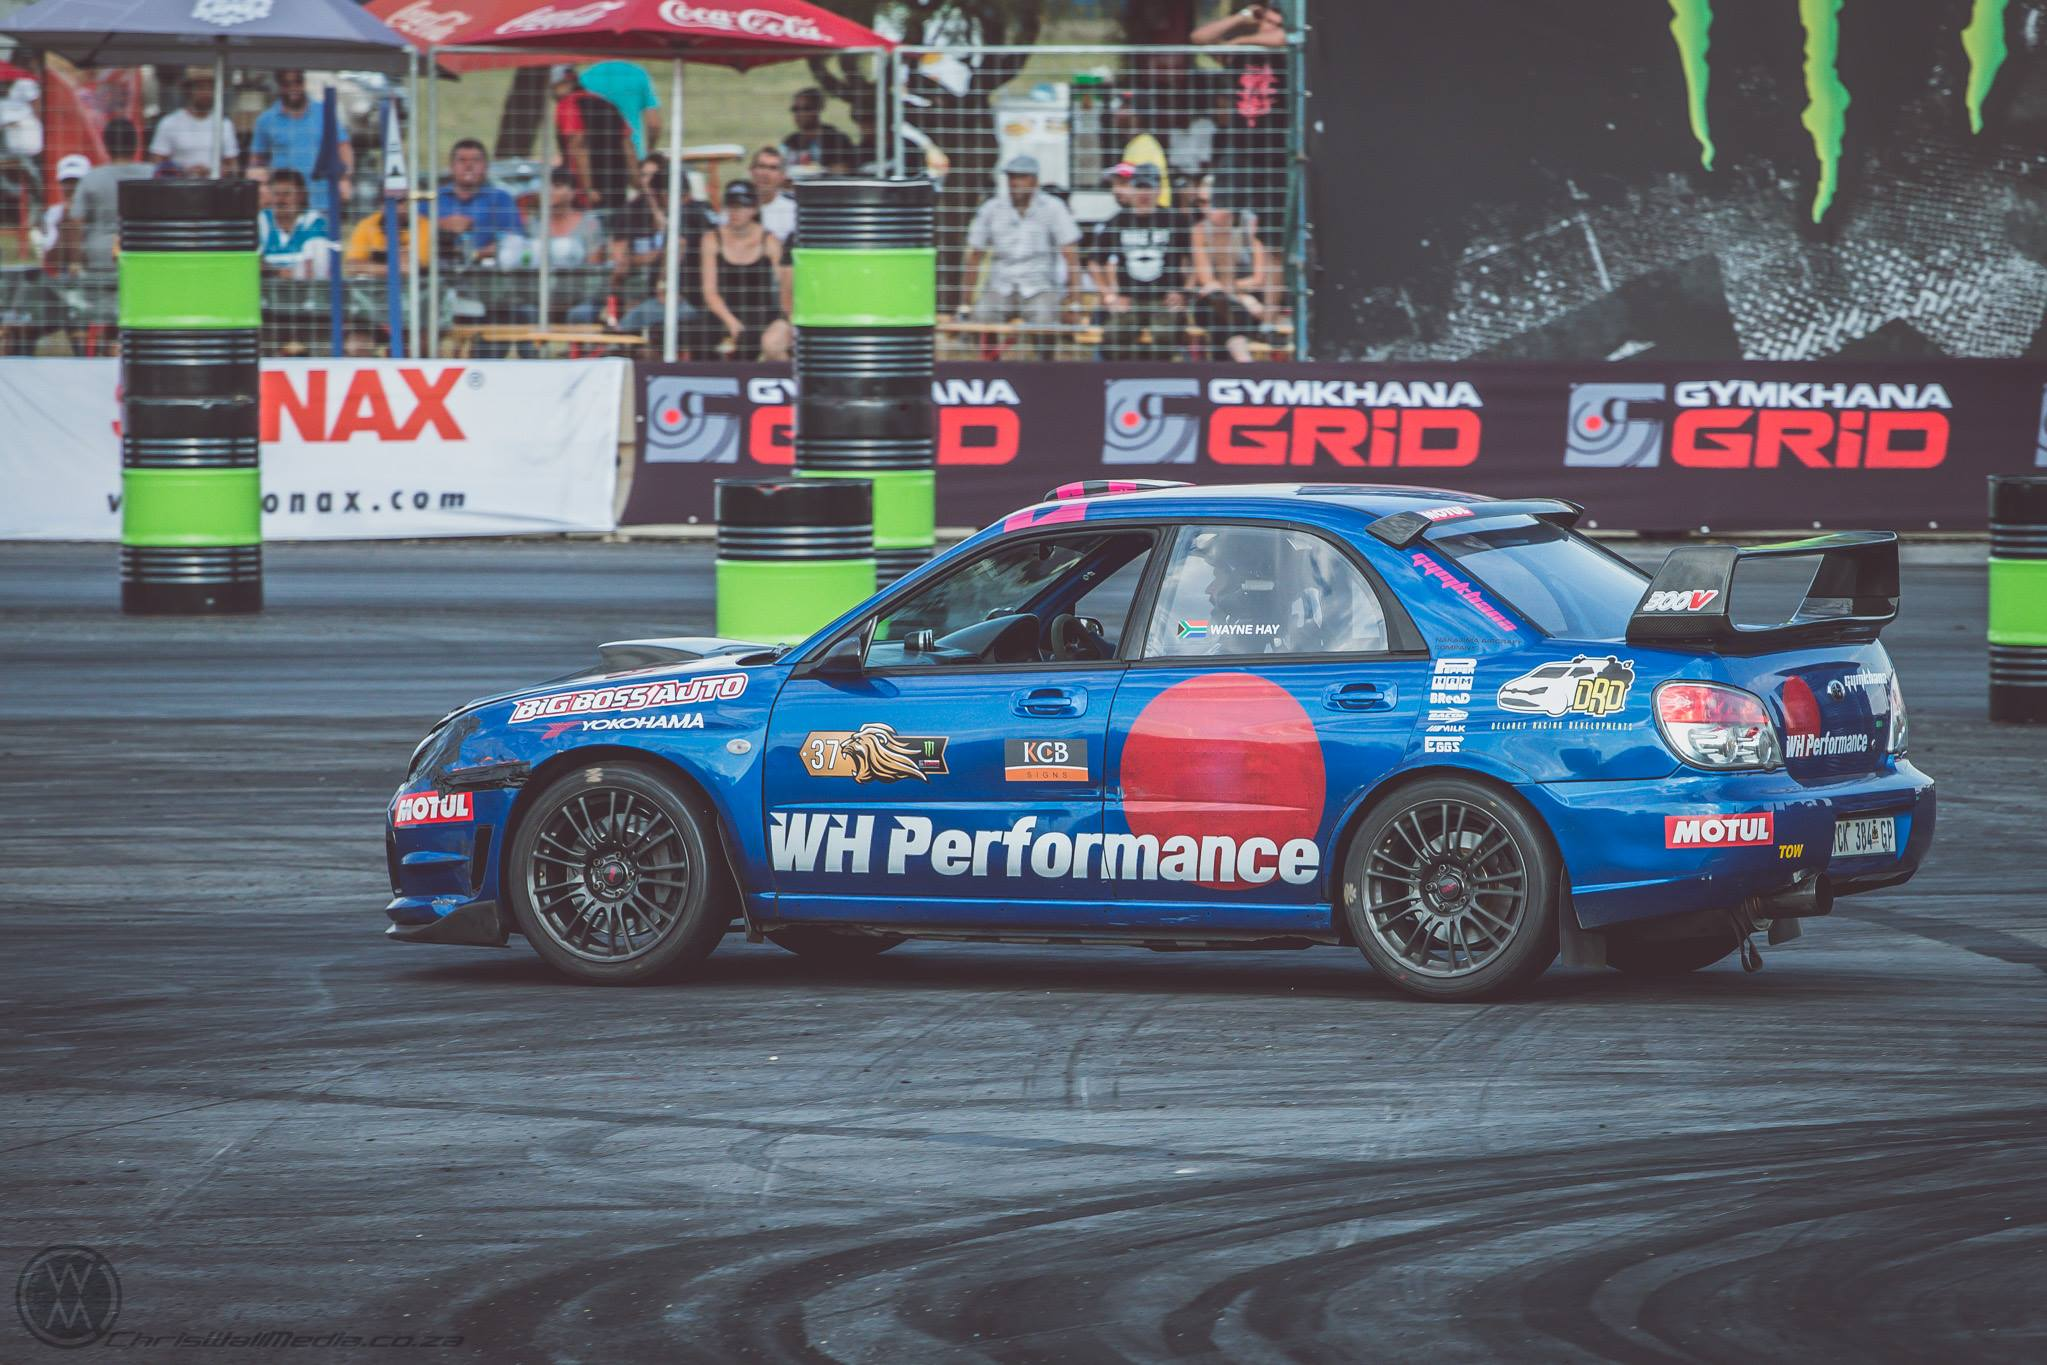 GYMKHANA GRID: SOUTH AFRICAN DRIVERS DEFENDING LOCAL HONOURS